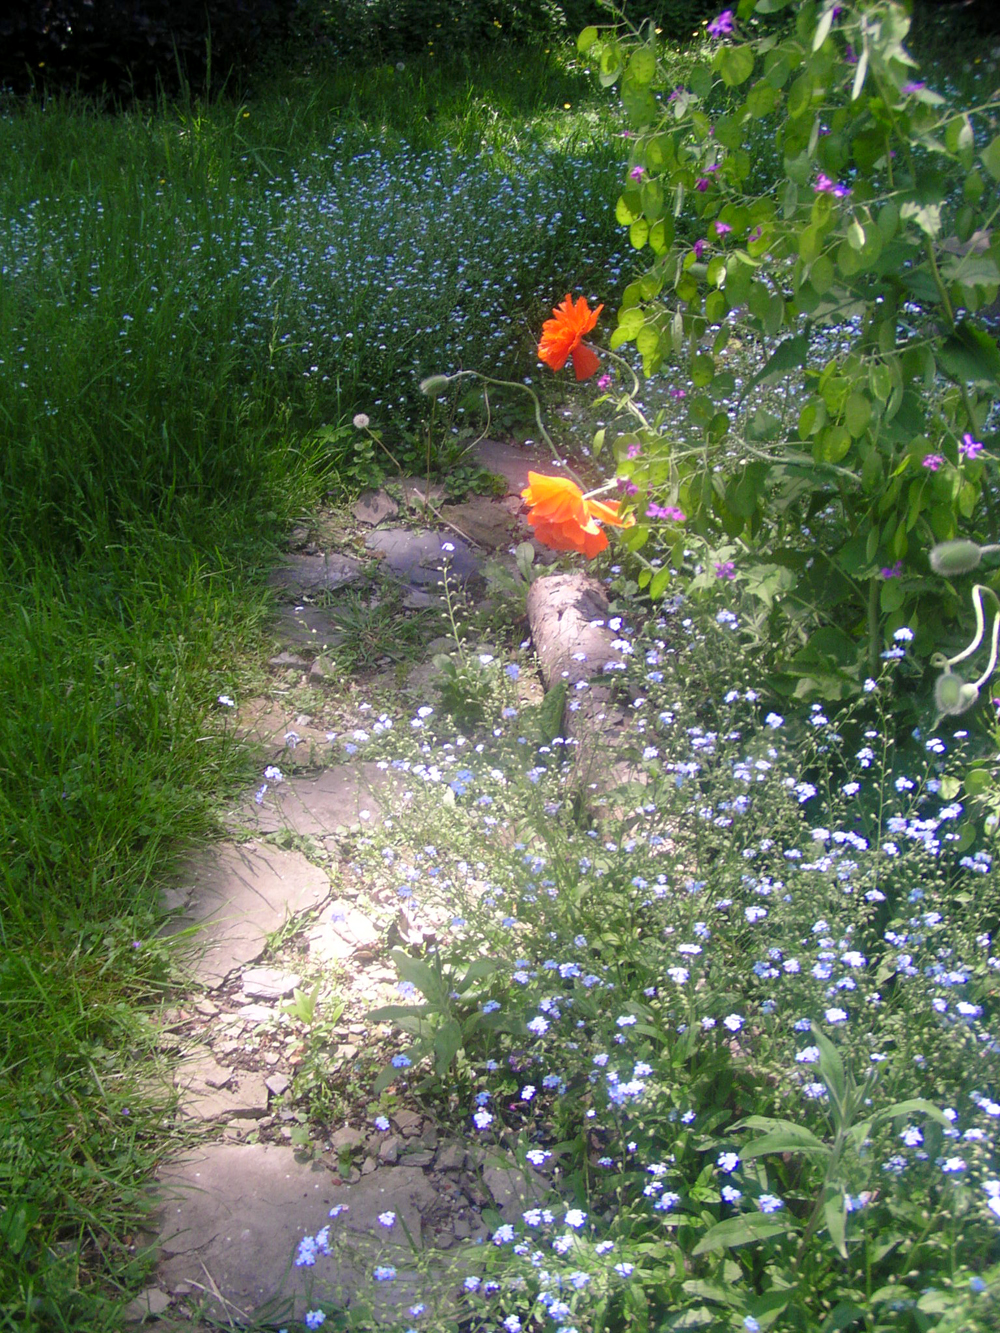 My garden path with the bright orange field poppies and forget-me-nots.